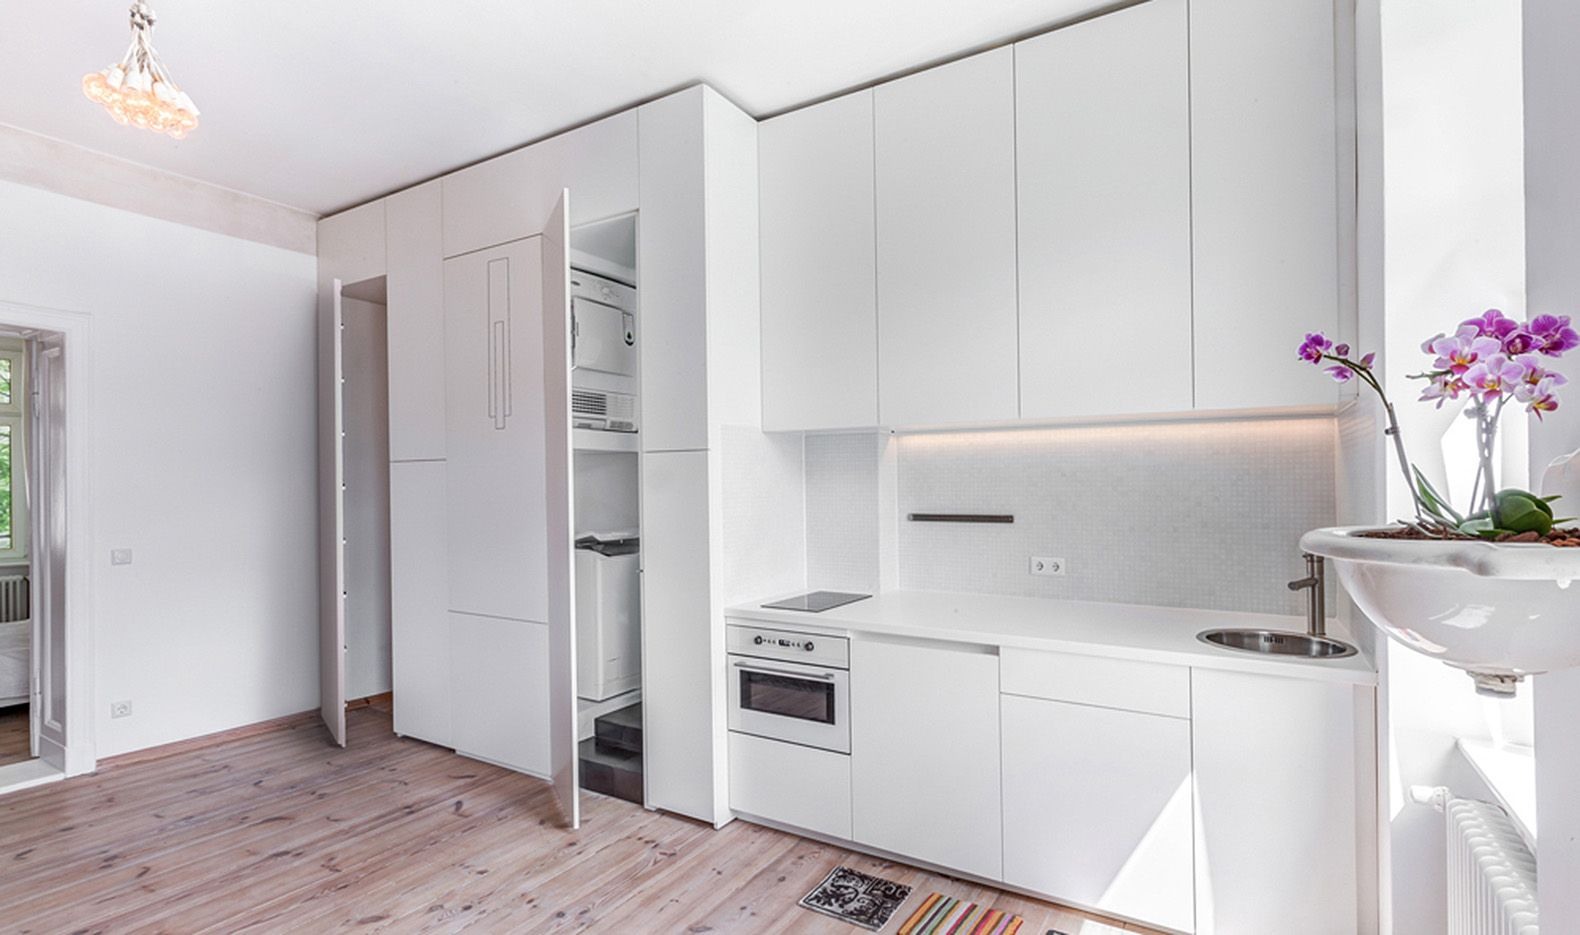 Furniture folds out of the walls in this tiny transforming apartment ...